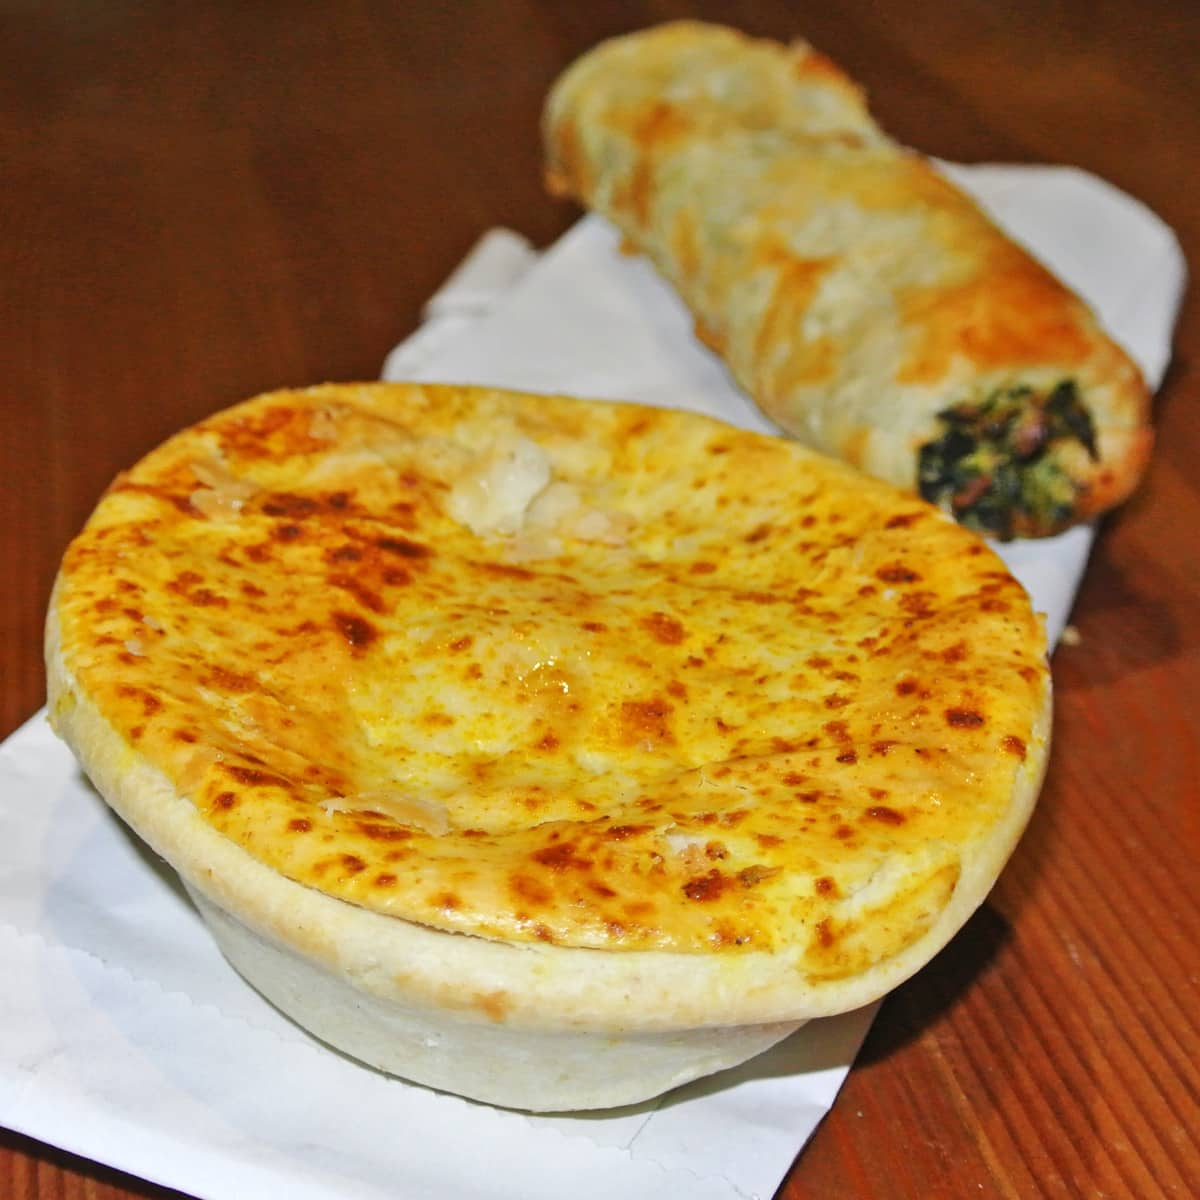 New Zealand Style Meat Pies & More at Dub Pies